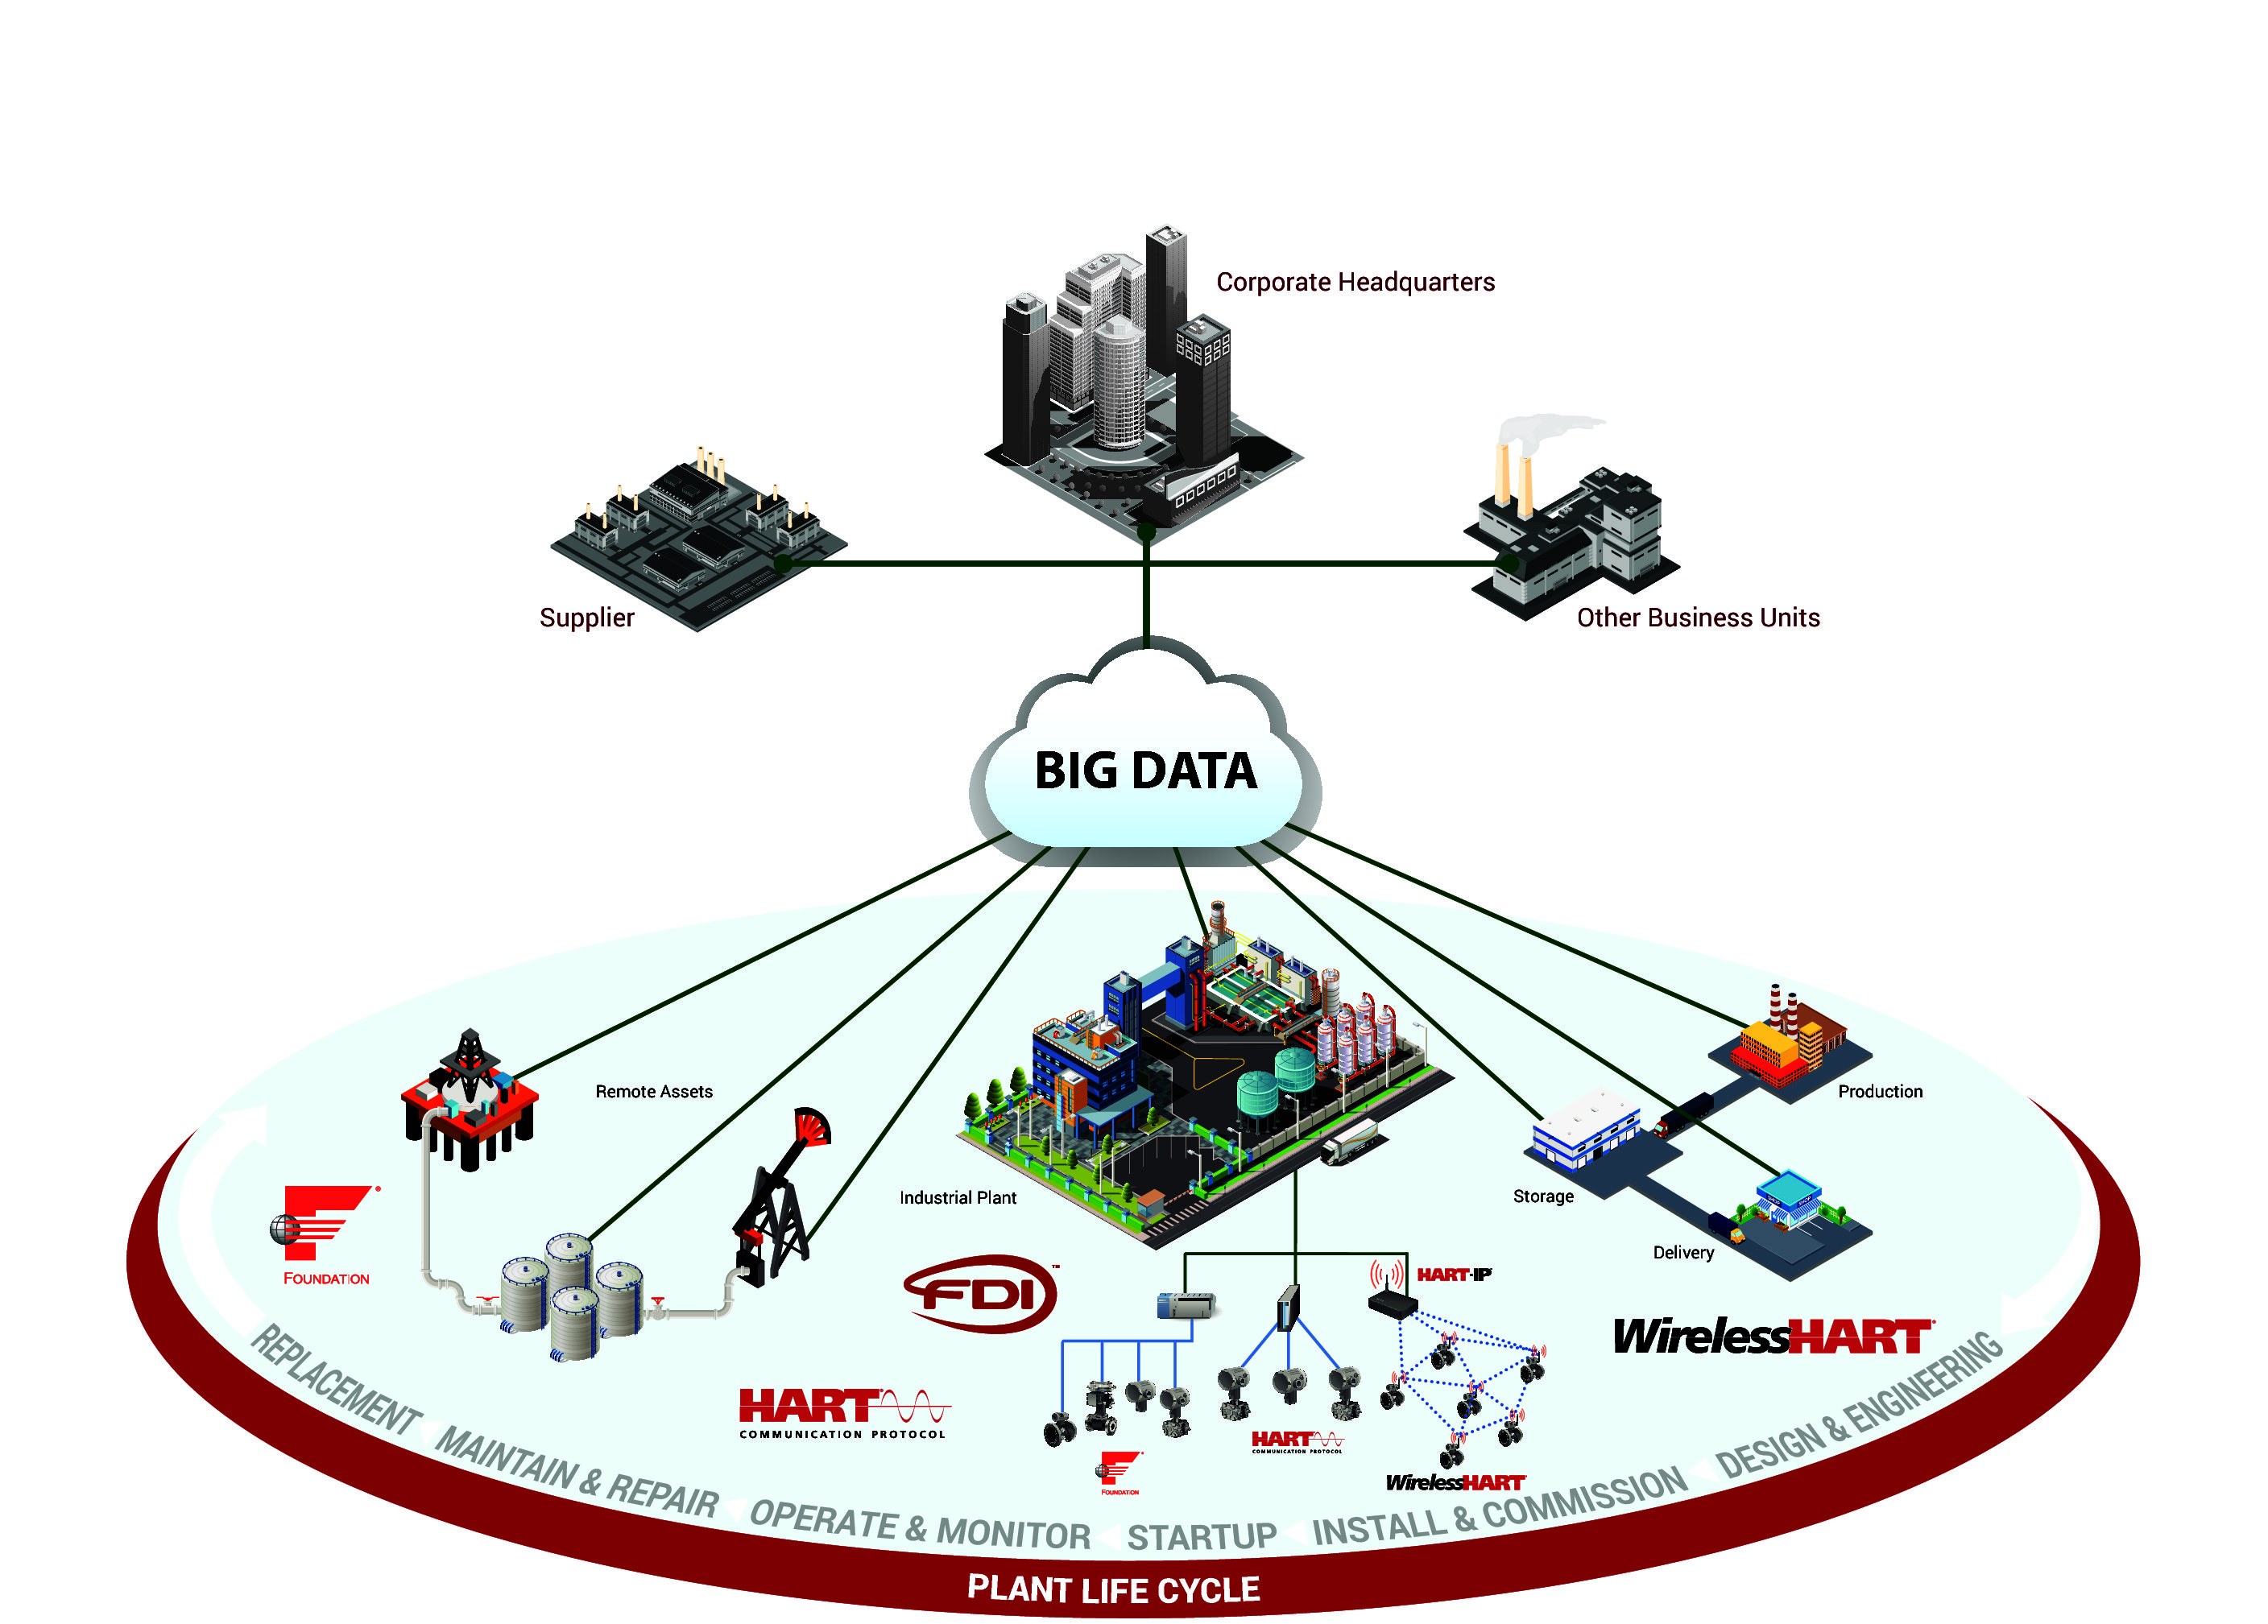 Fint provides solution for BIG Data, IIoT, applications